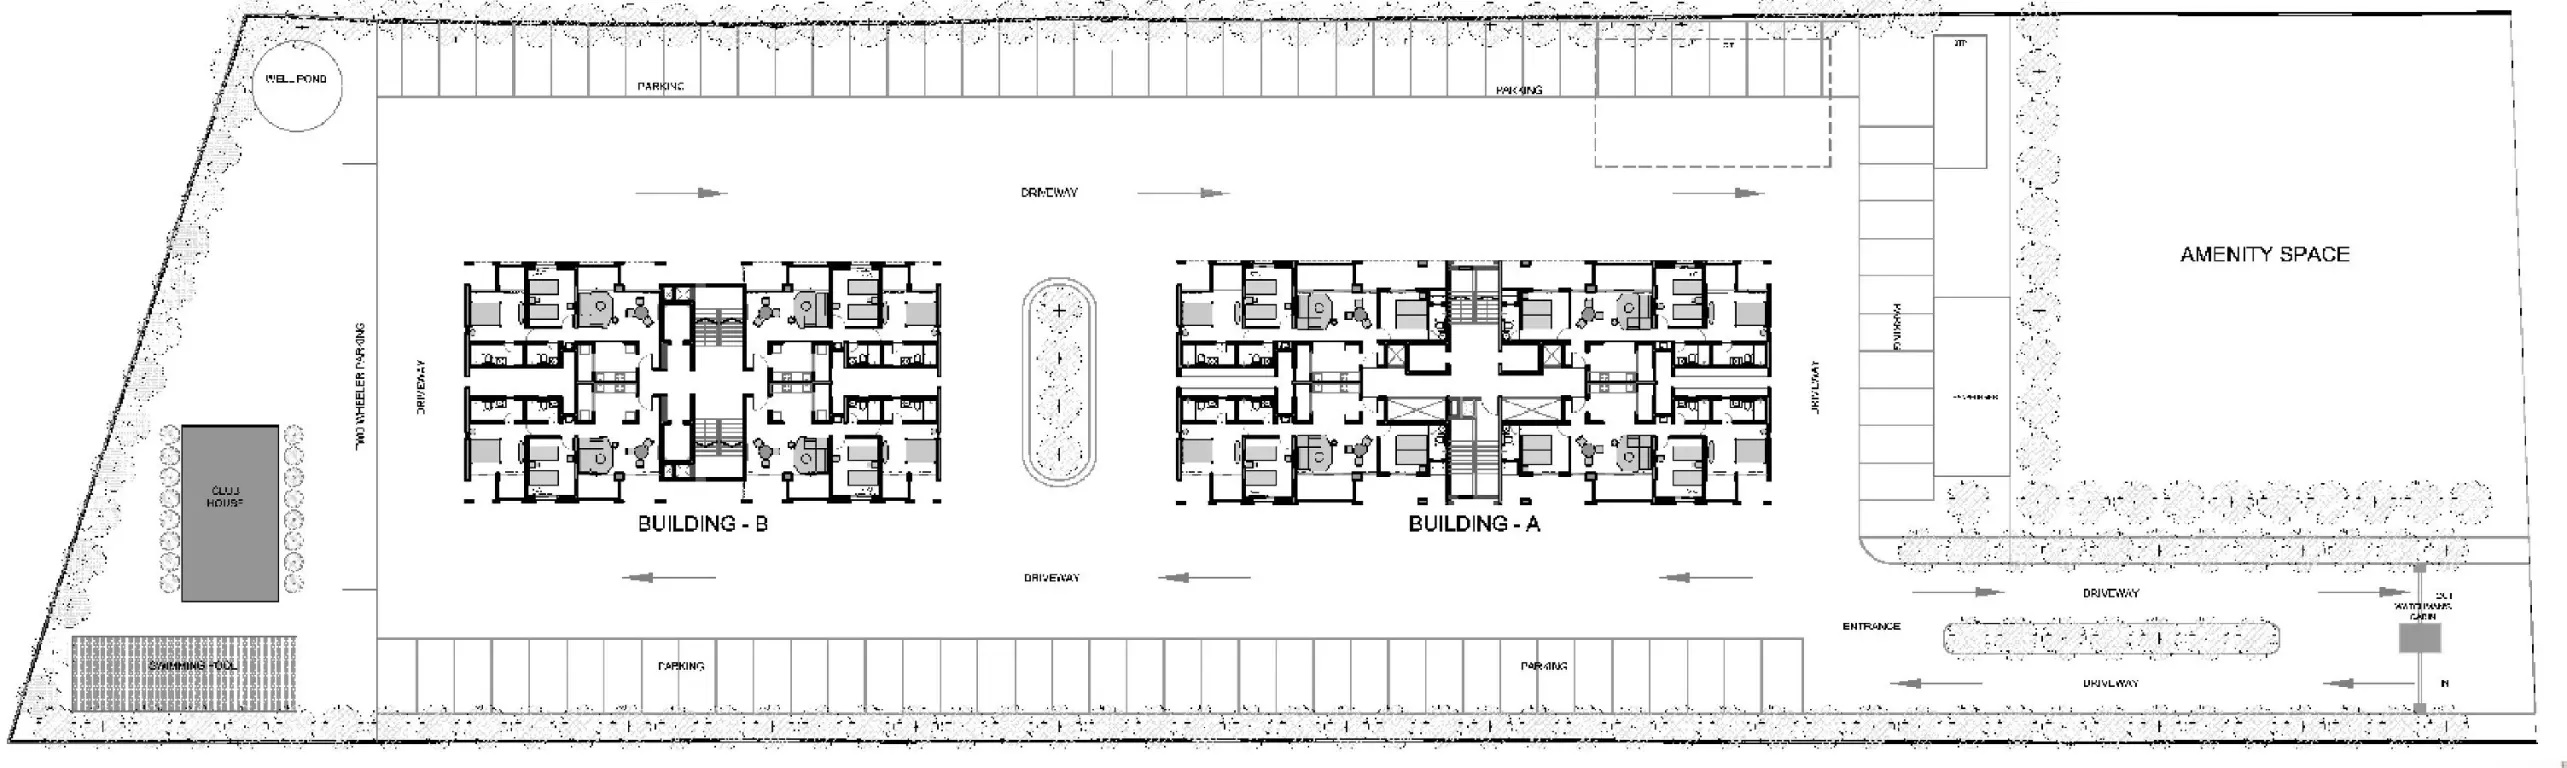 master-plan-image-Picture-oxford-florida-water-color-2-3048900